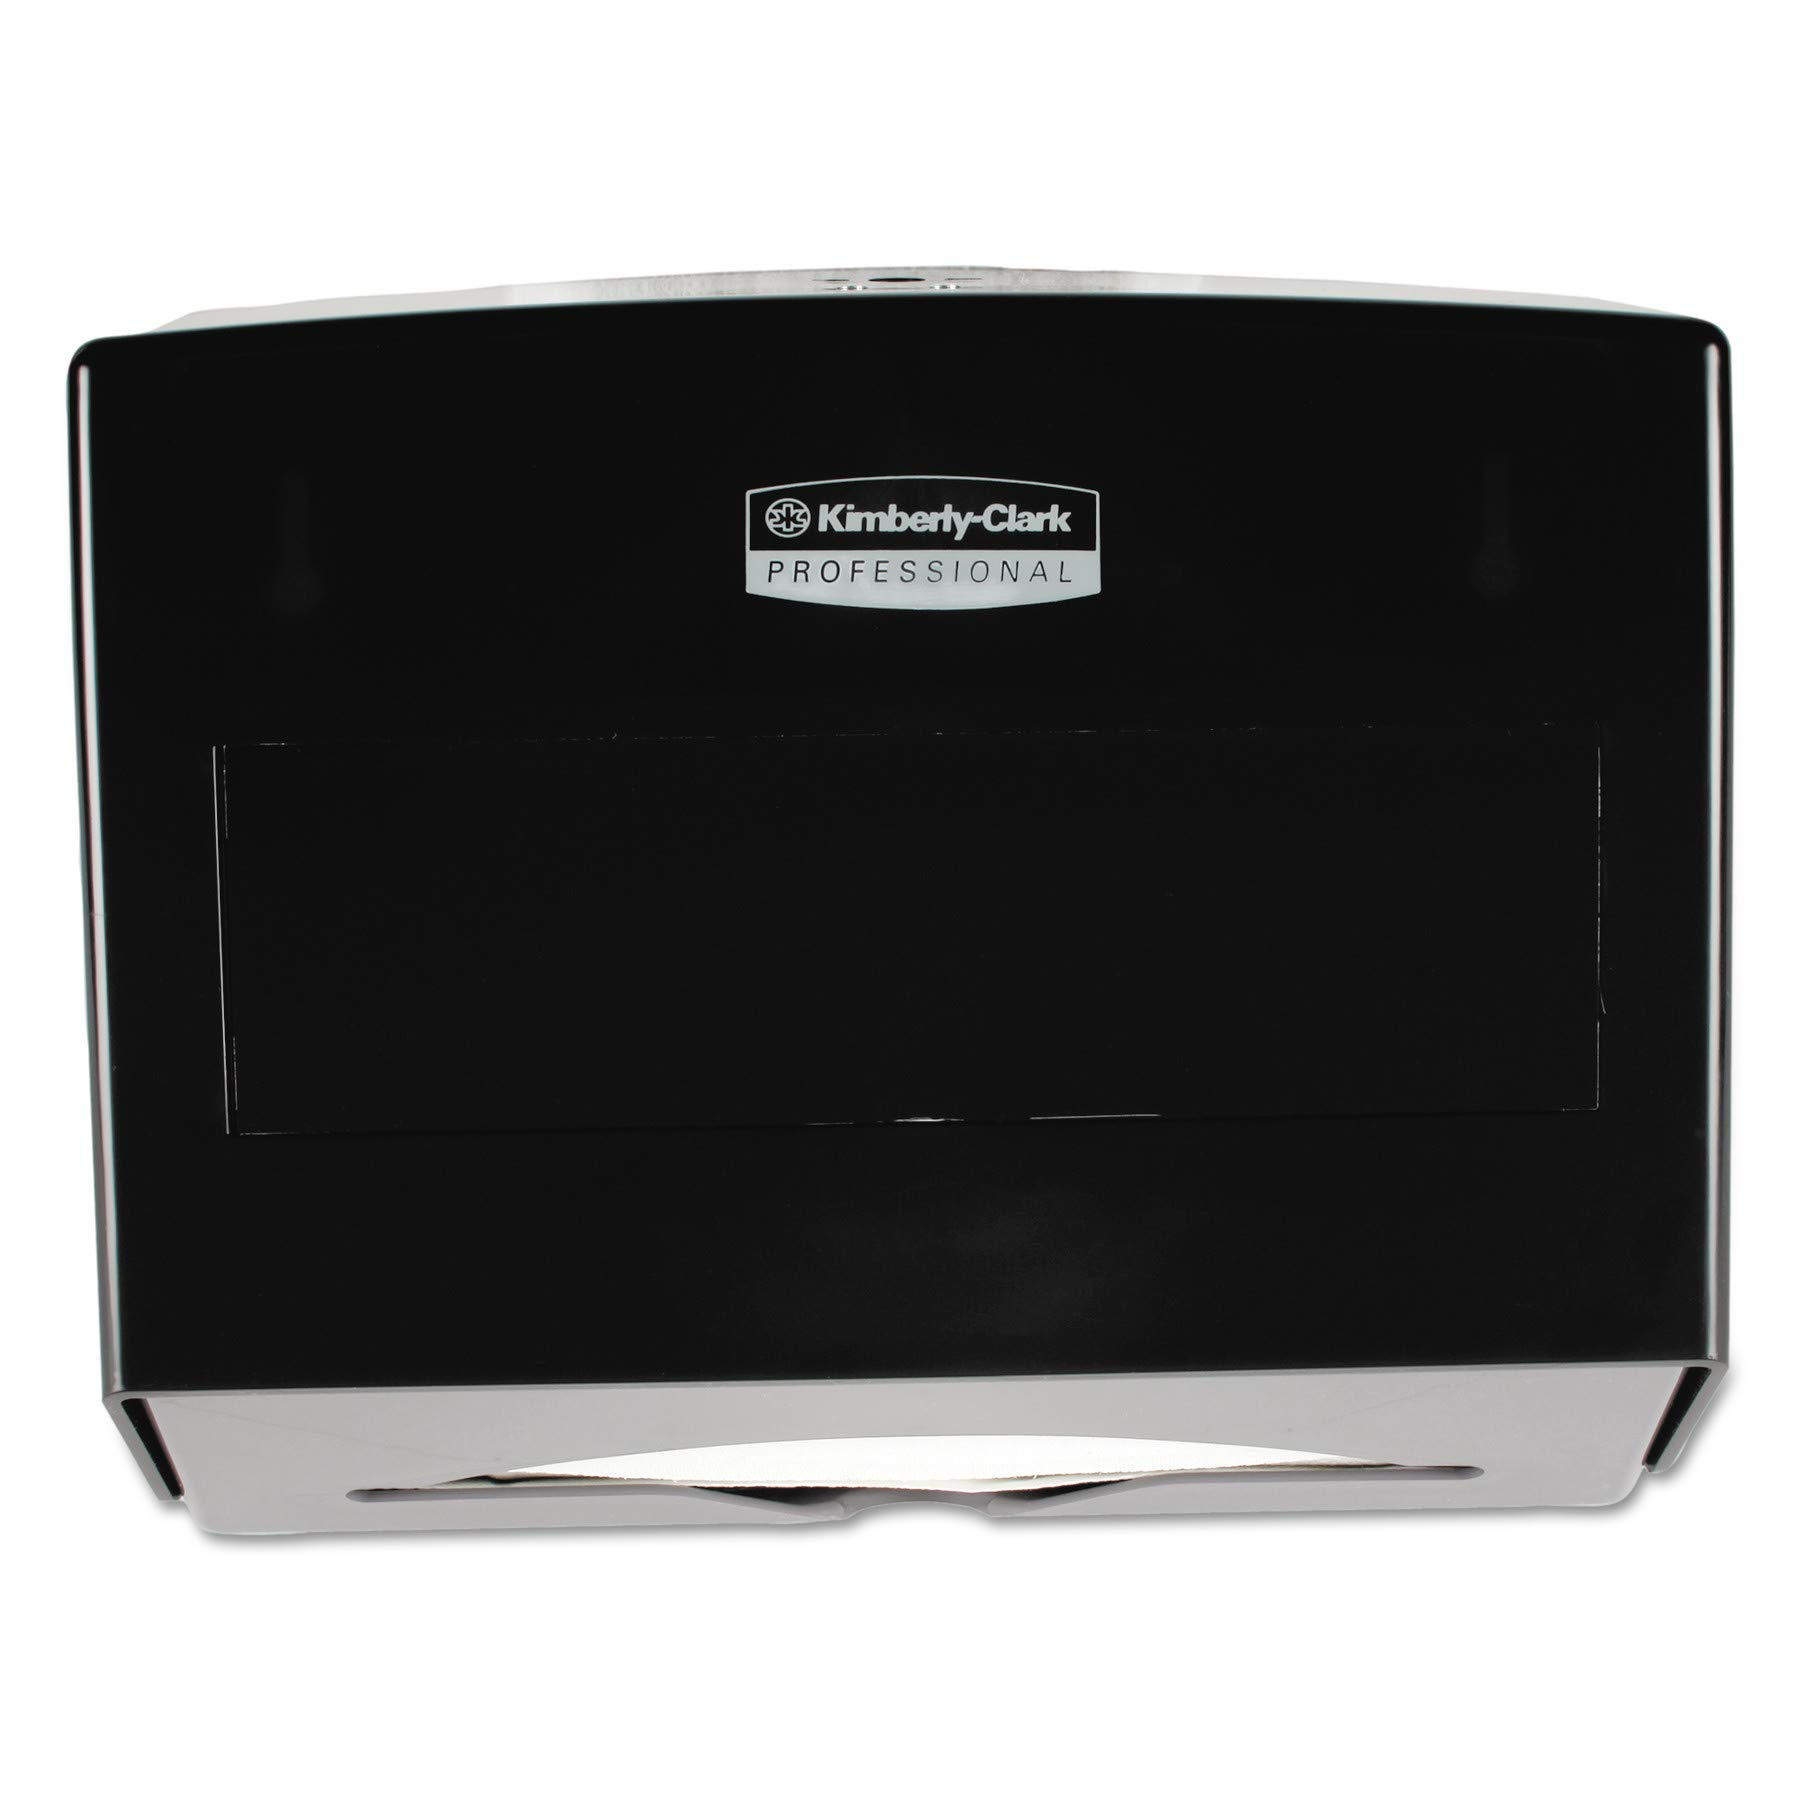 Scott 09215 Scottfold Folded Towel Dispenser, Plastic, 10 3/4 x 4 3